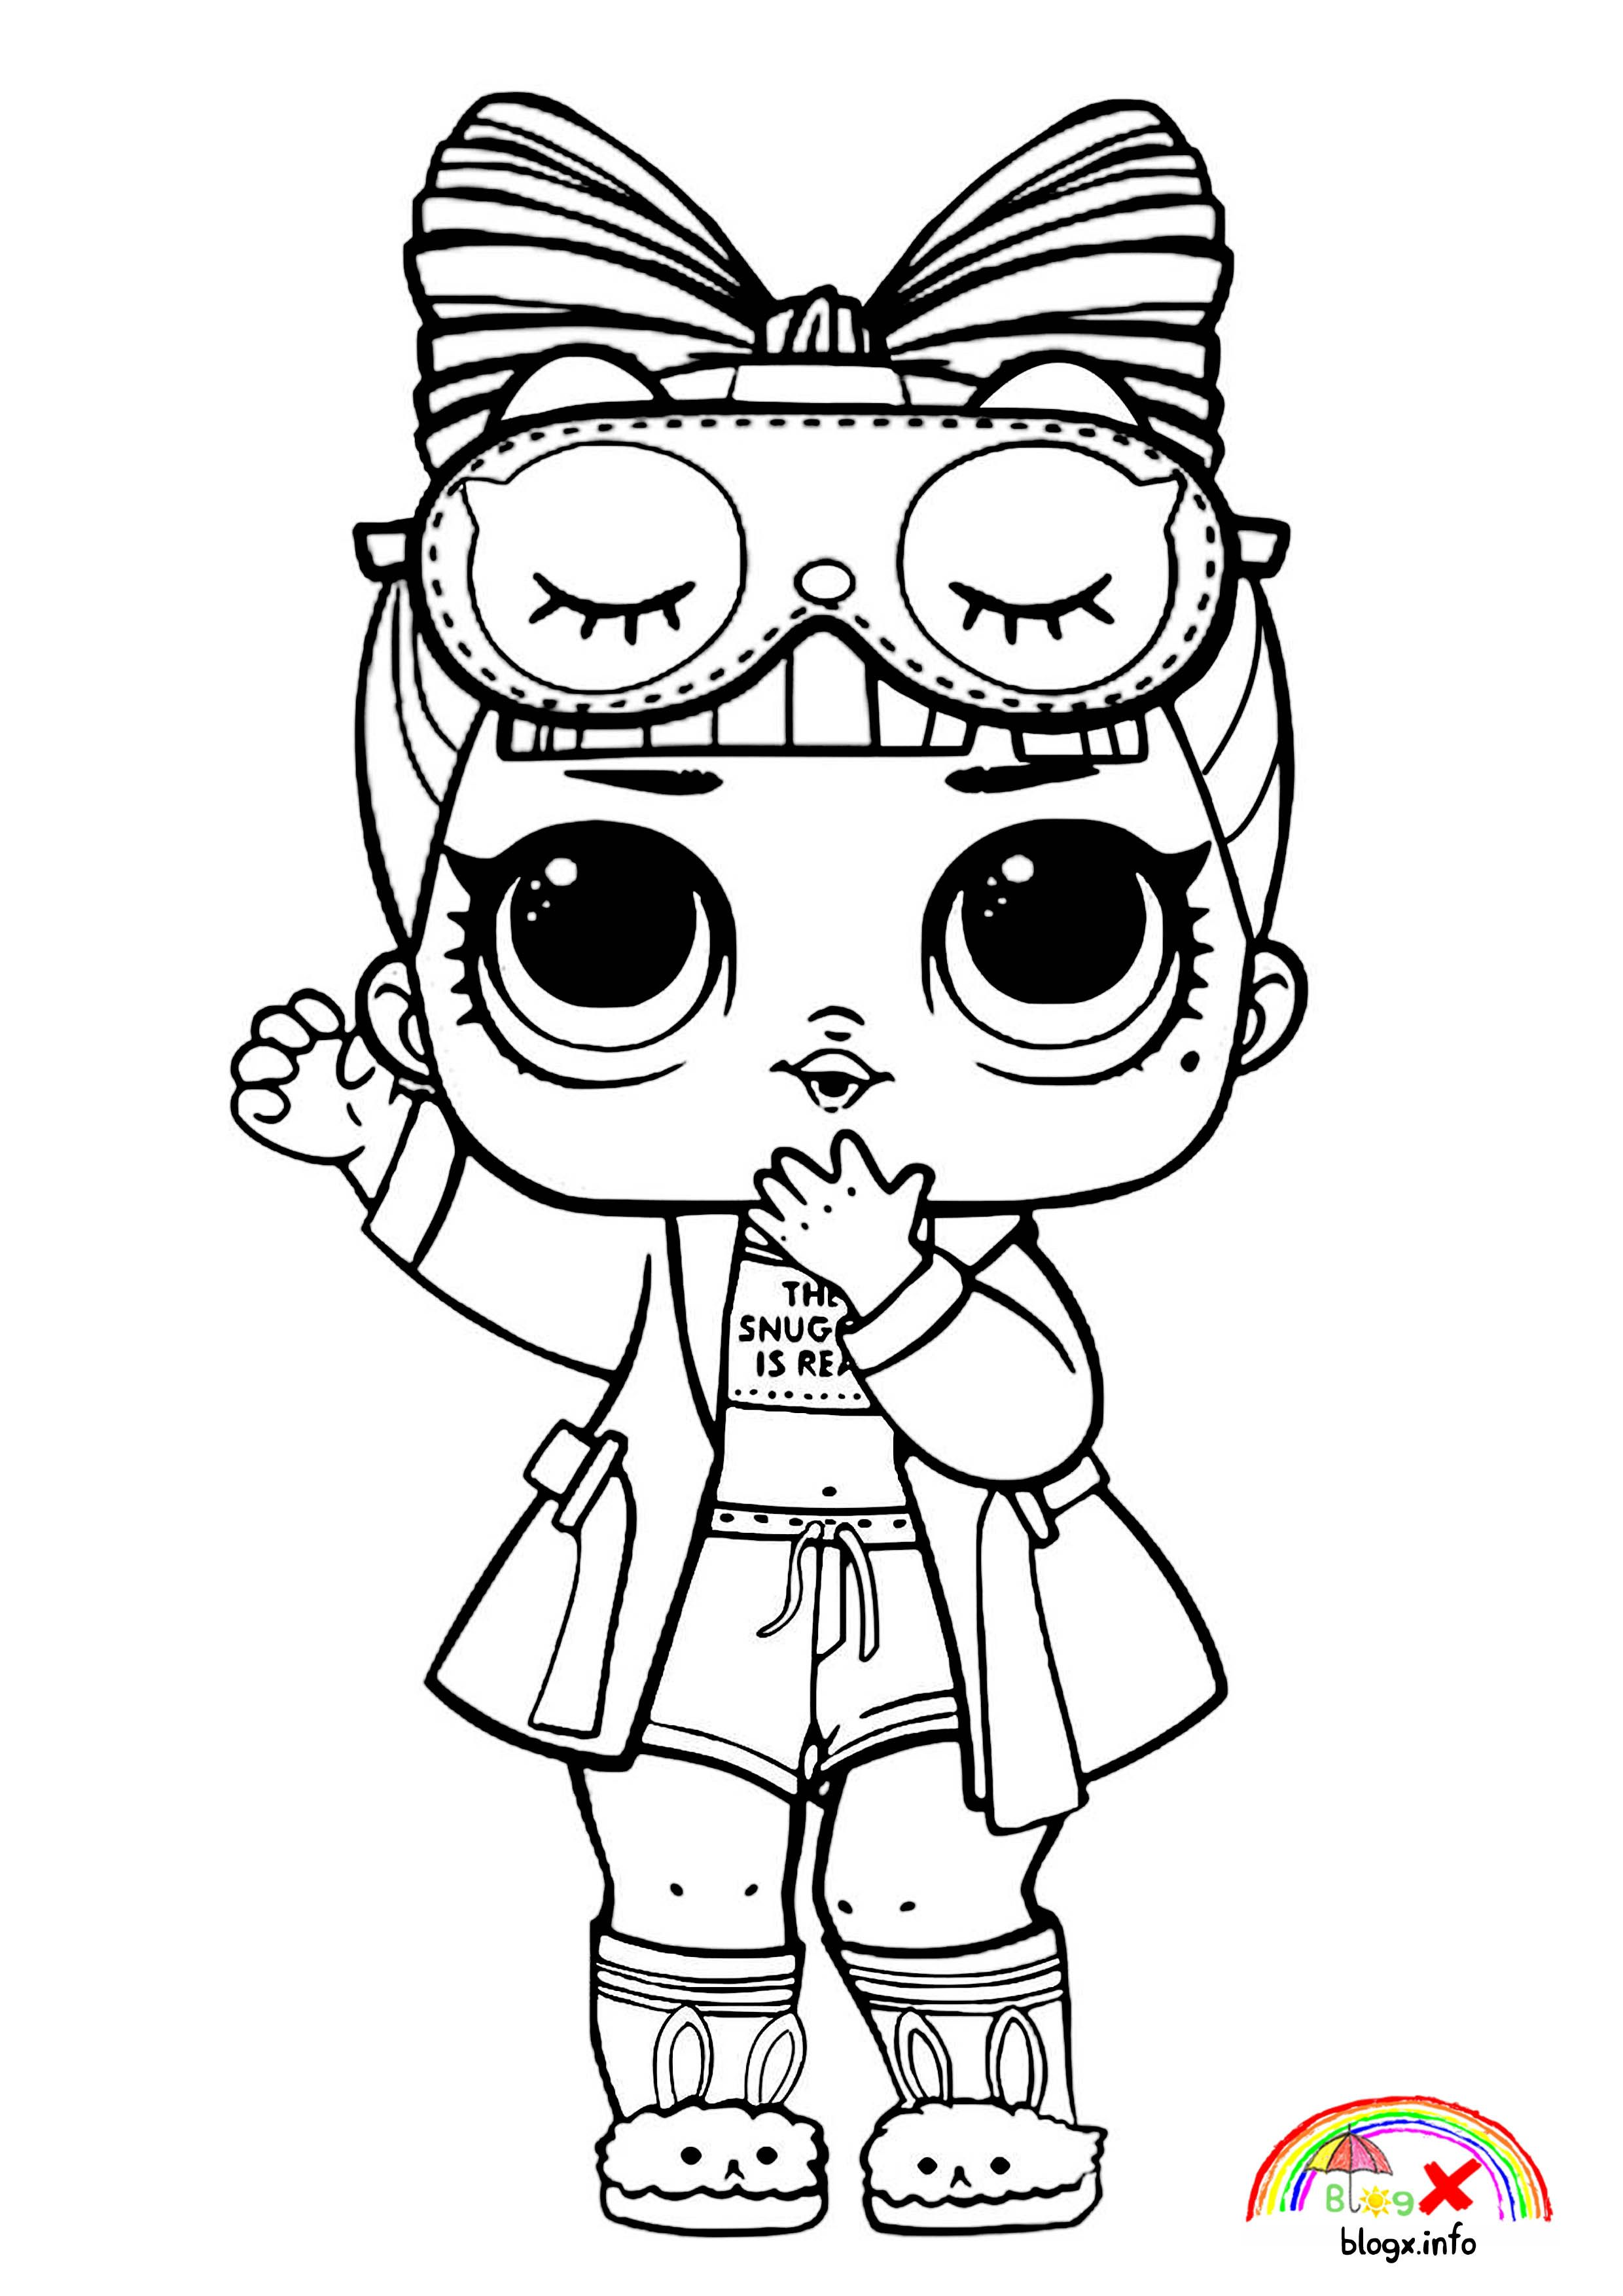 Surprise Lol Dolls Coloring Page Bunny Shoes Animal Coloring Pages Cute Kawaii Animals Coloring Pages